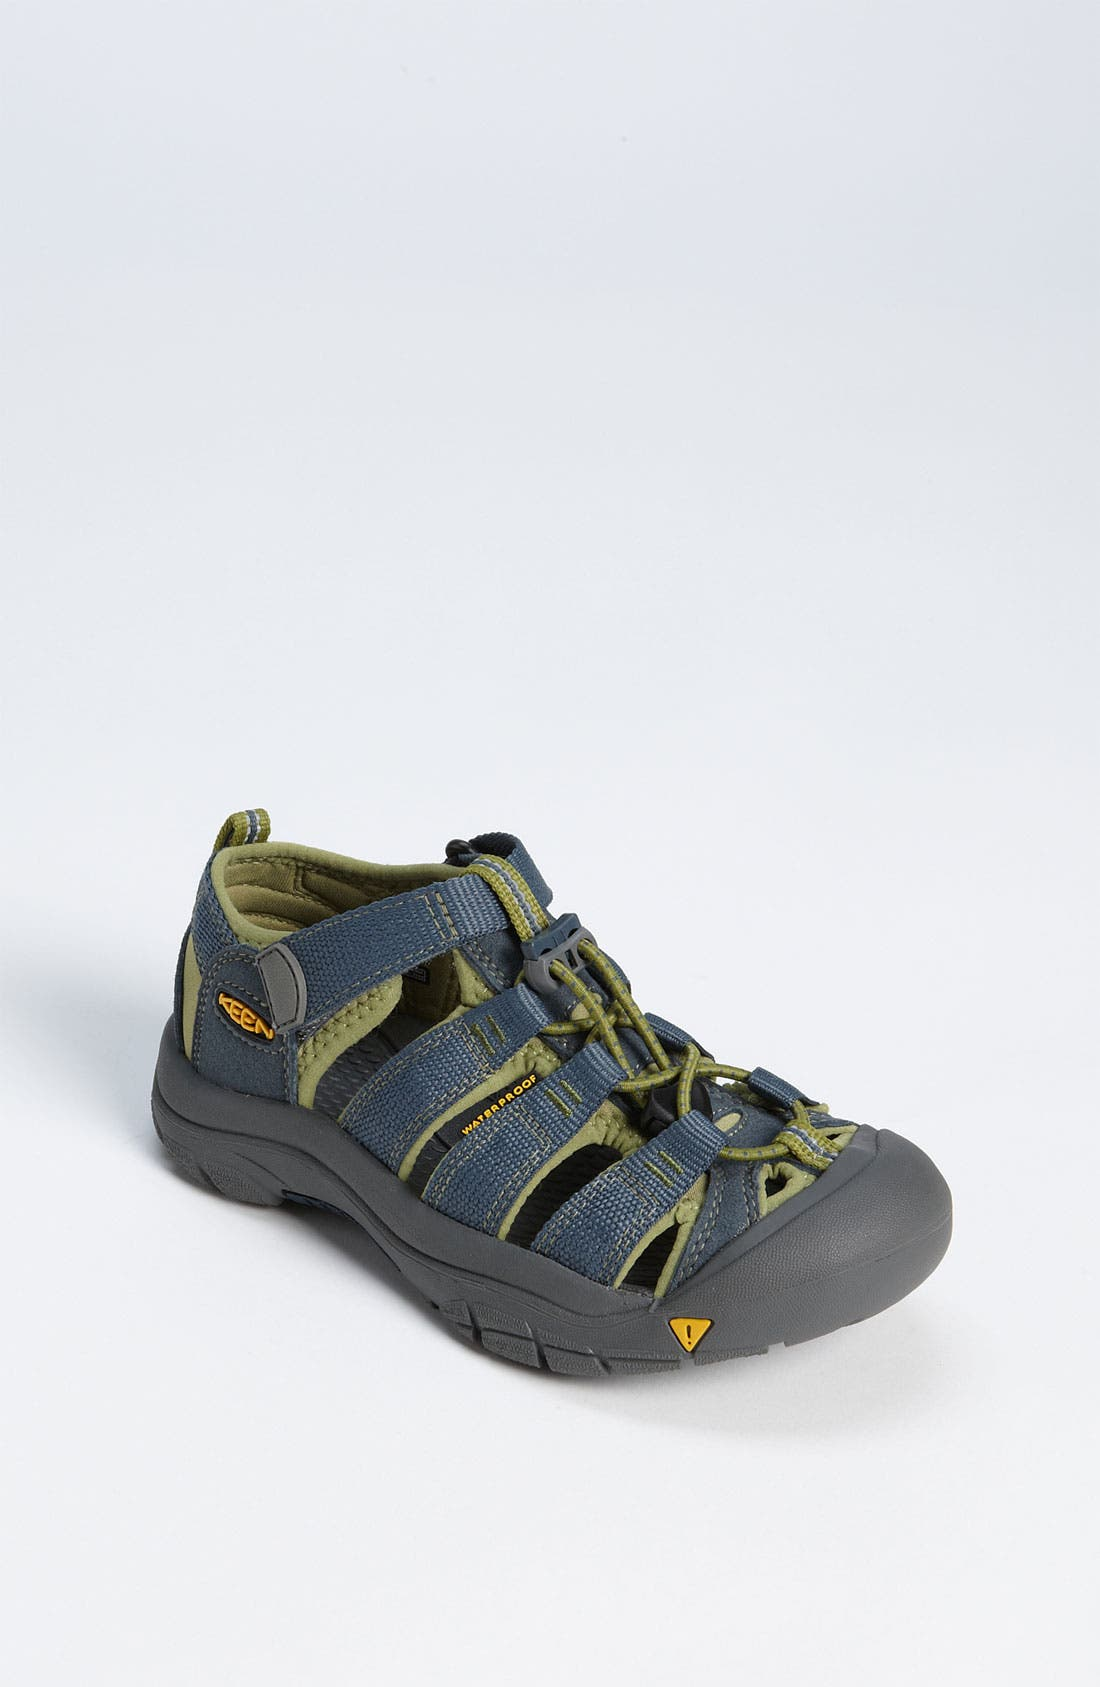 Alternate Image 1 Selected - Keen 'Newport H2' Sandal (Toddler, Little Kid & Big Kid)